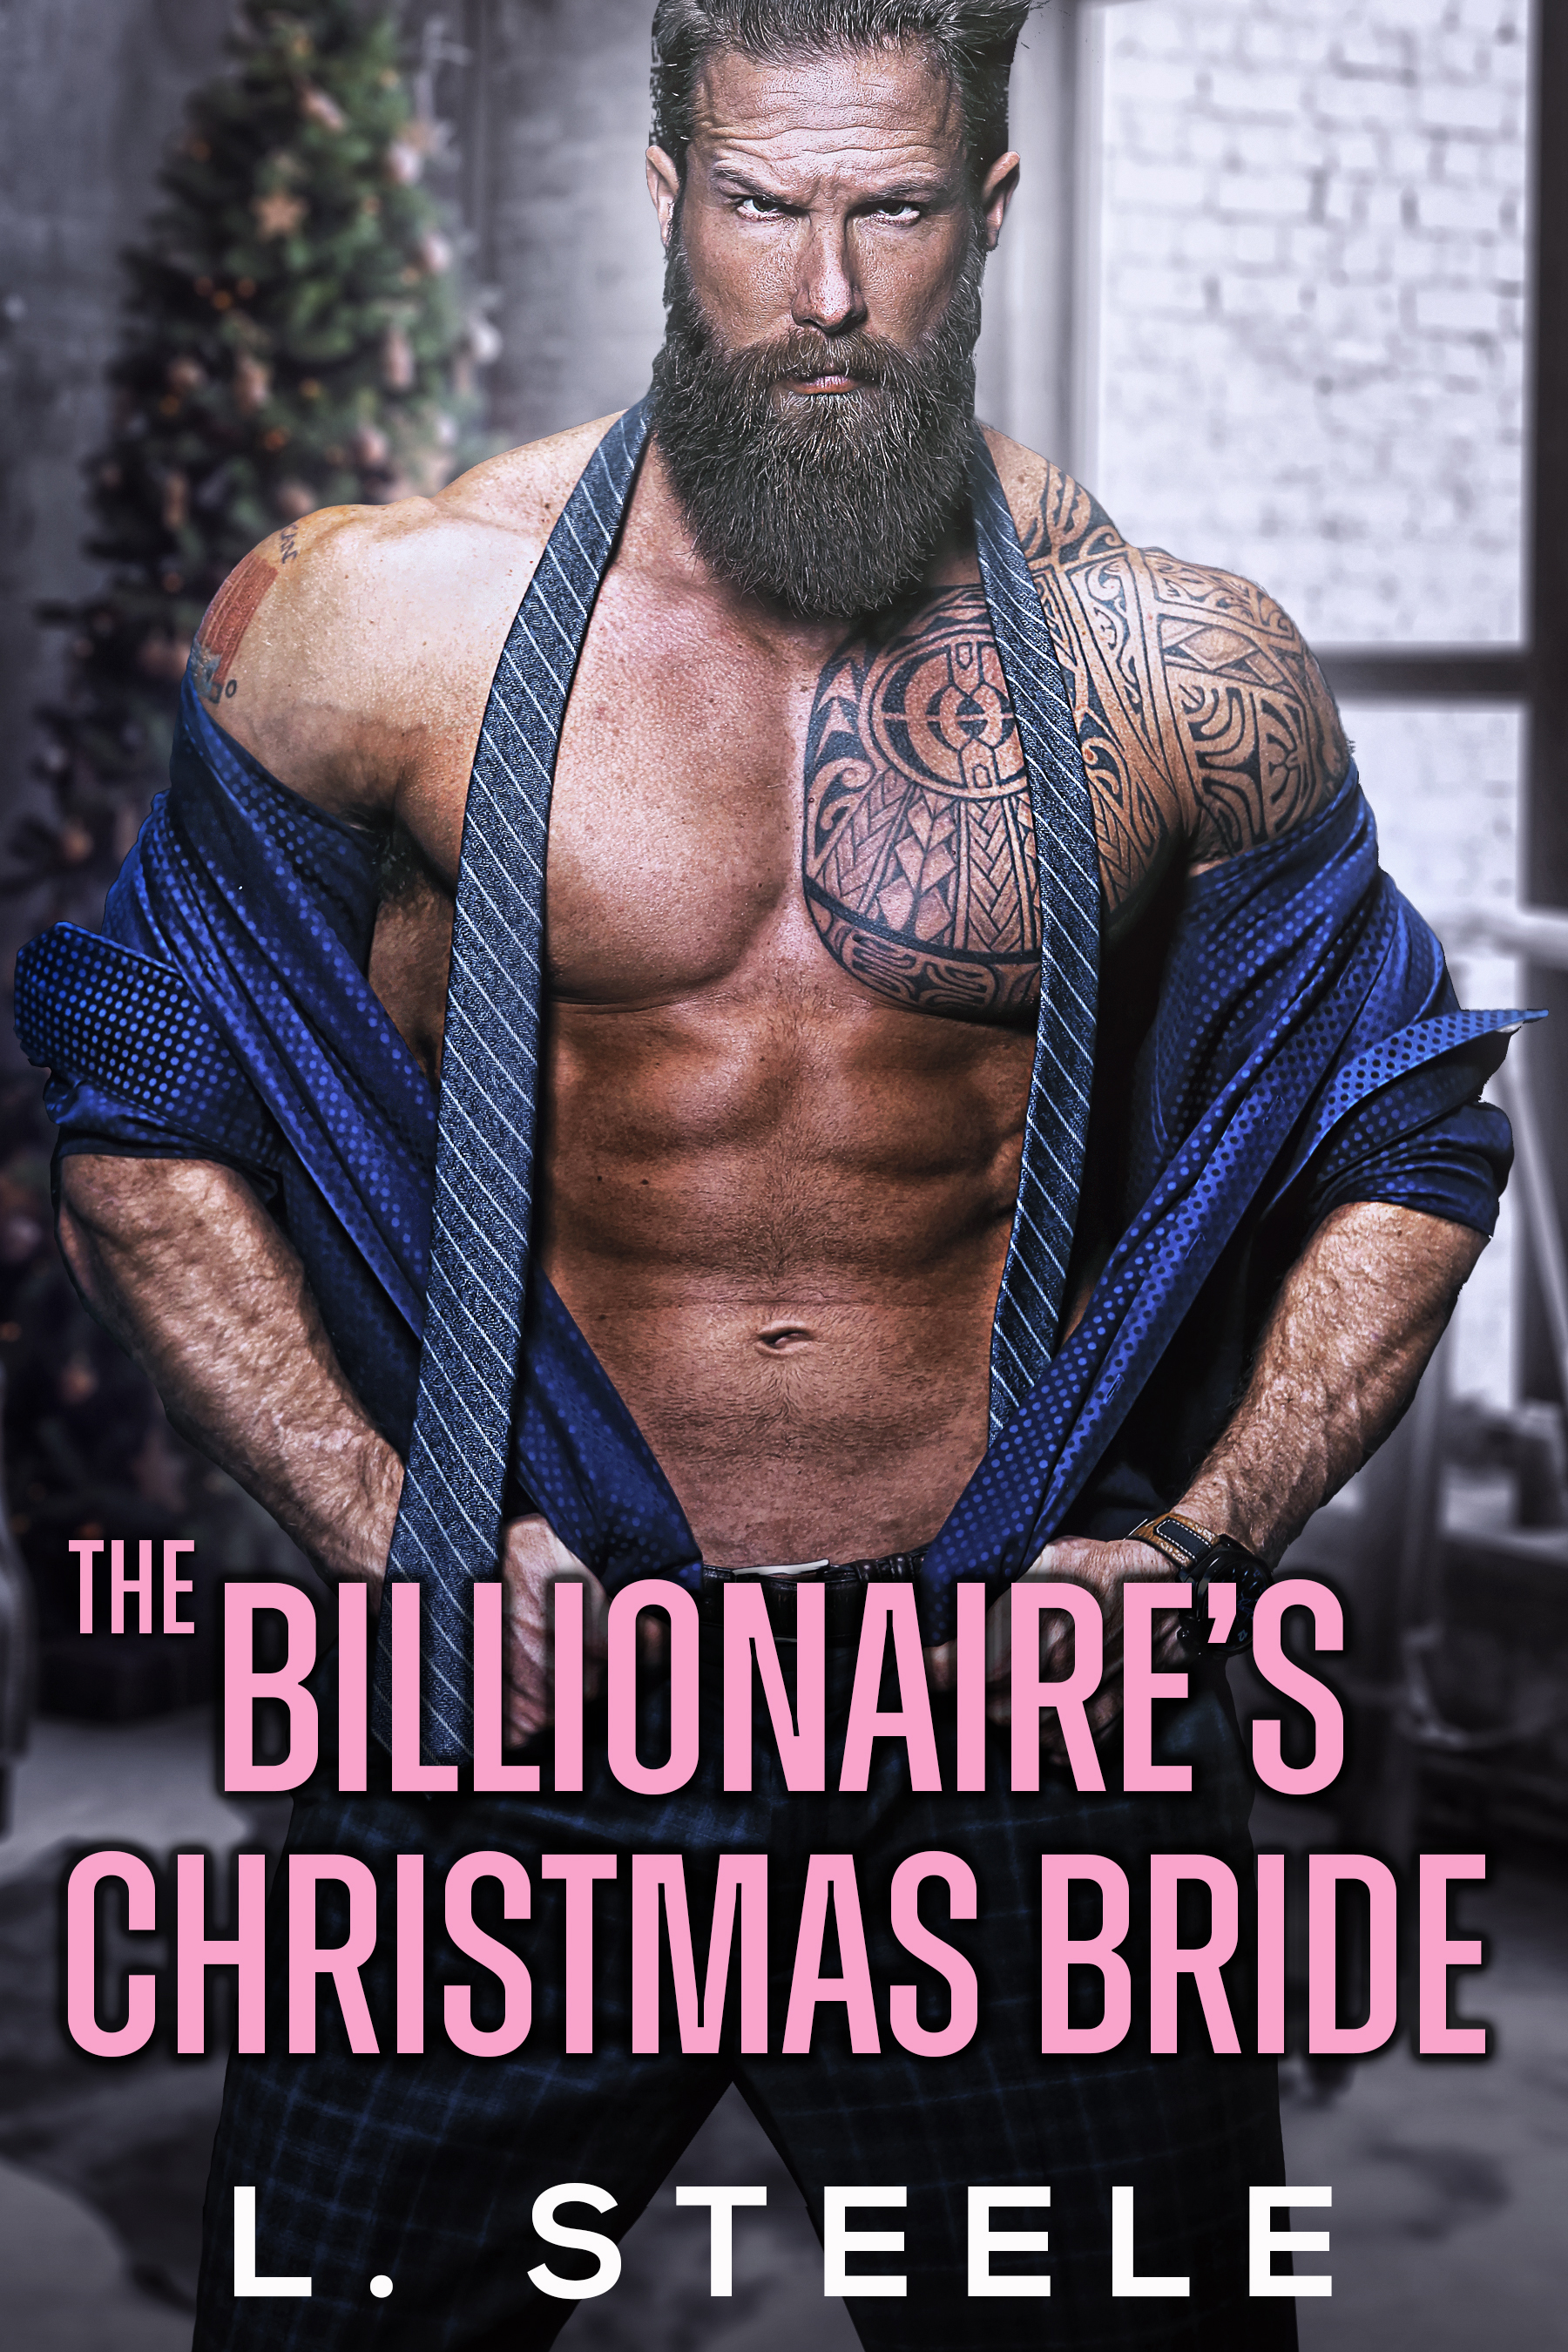 THE BILLIONAIRE'S CHRISTMAS BRIDE